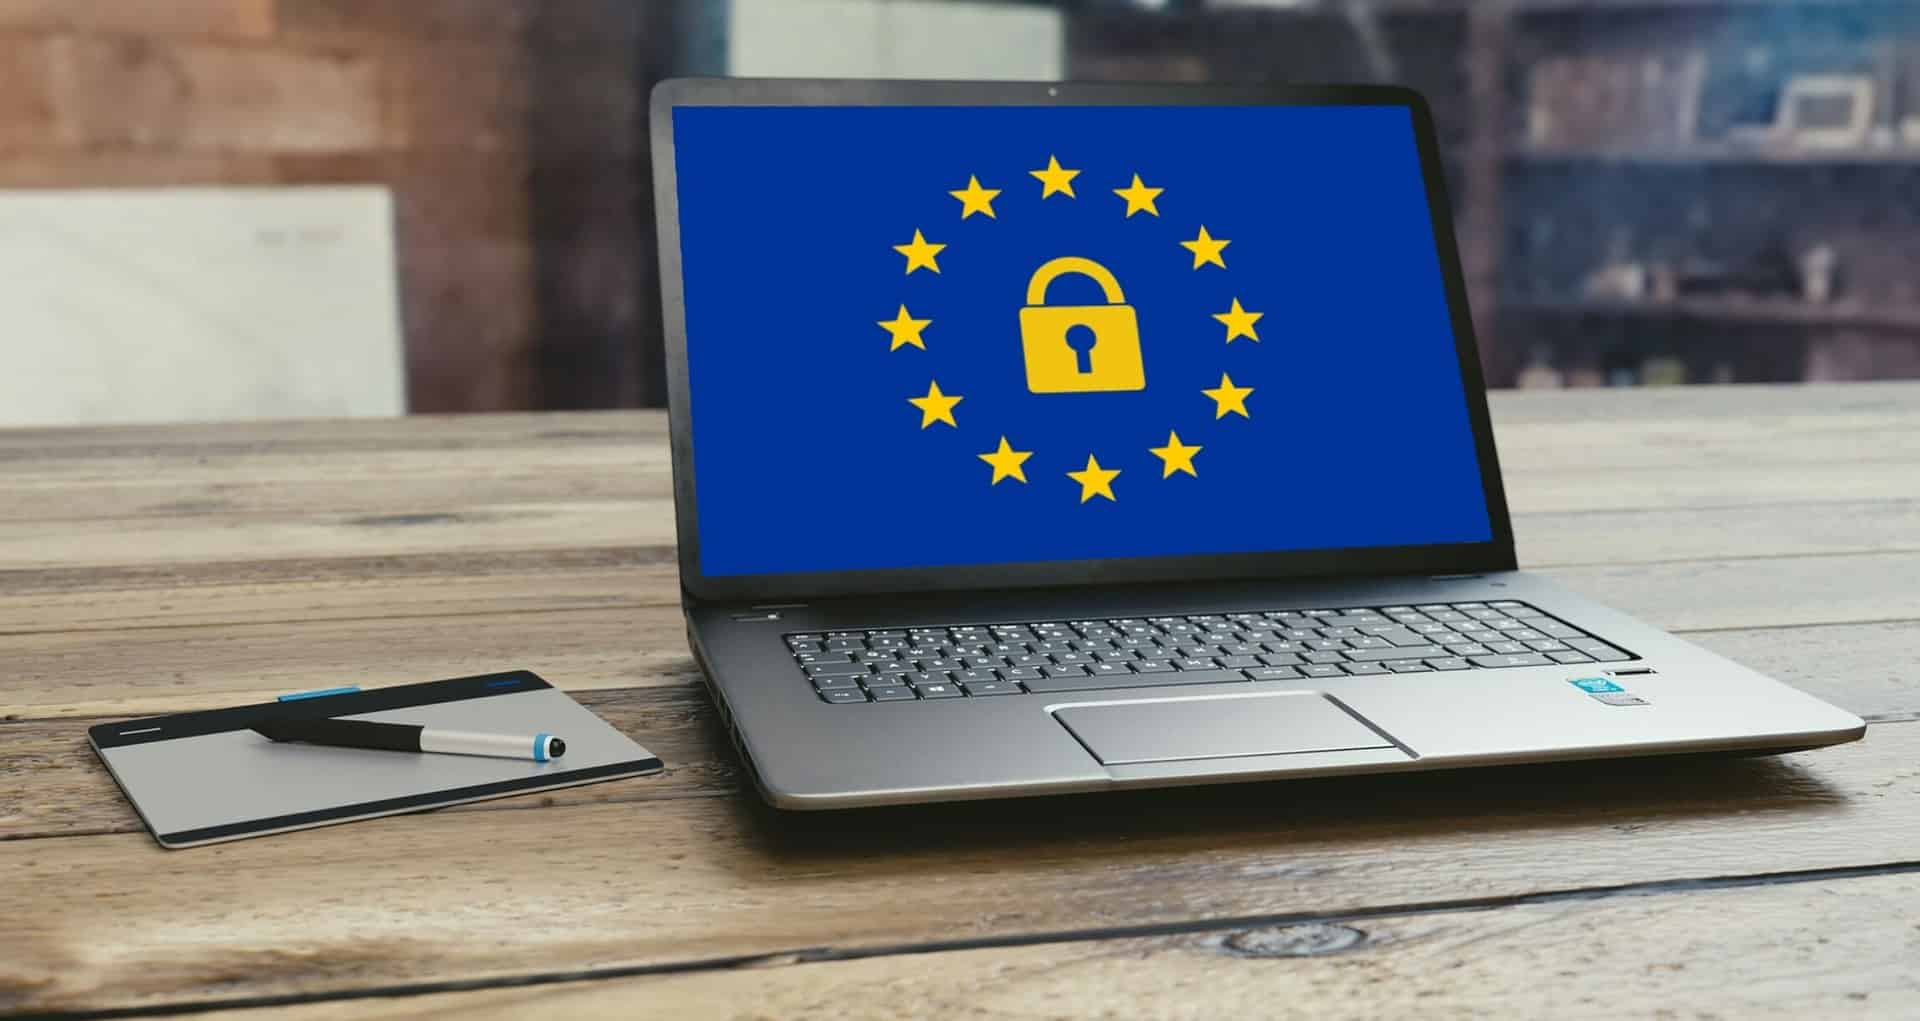 Practical GDPR tips for bloggers